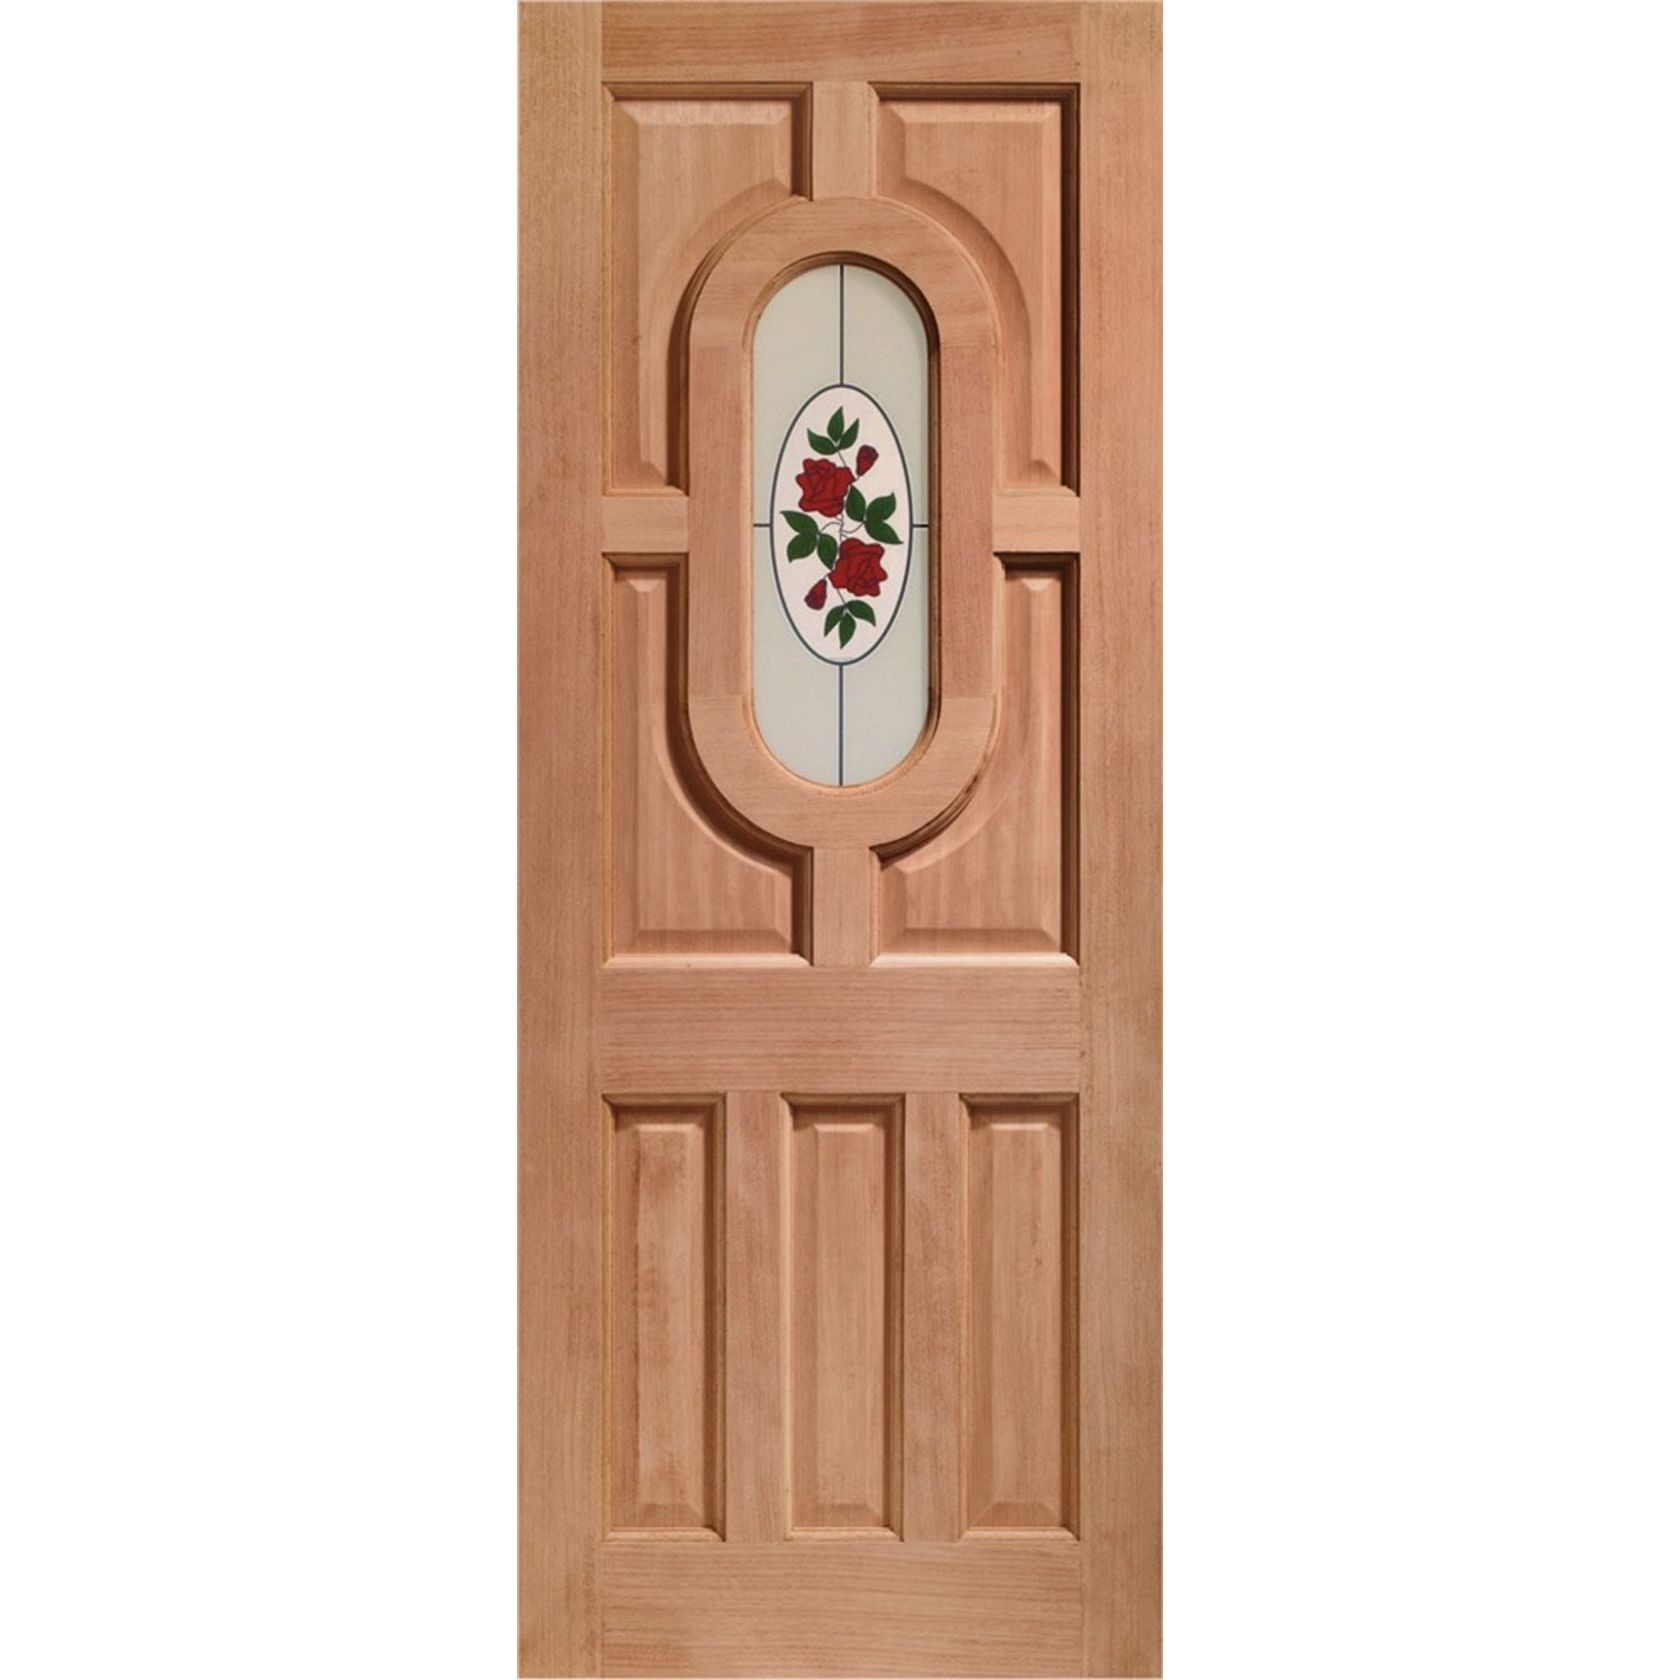 Acacia Glazed Door: 1-light *Byron Single Glazed* [Hardwood] 44mm Dowel External - XL Doors